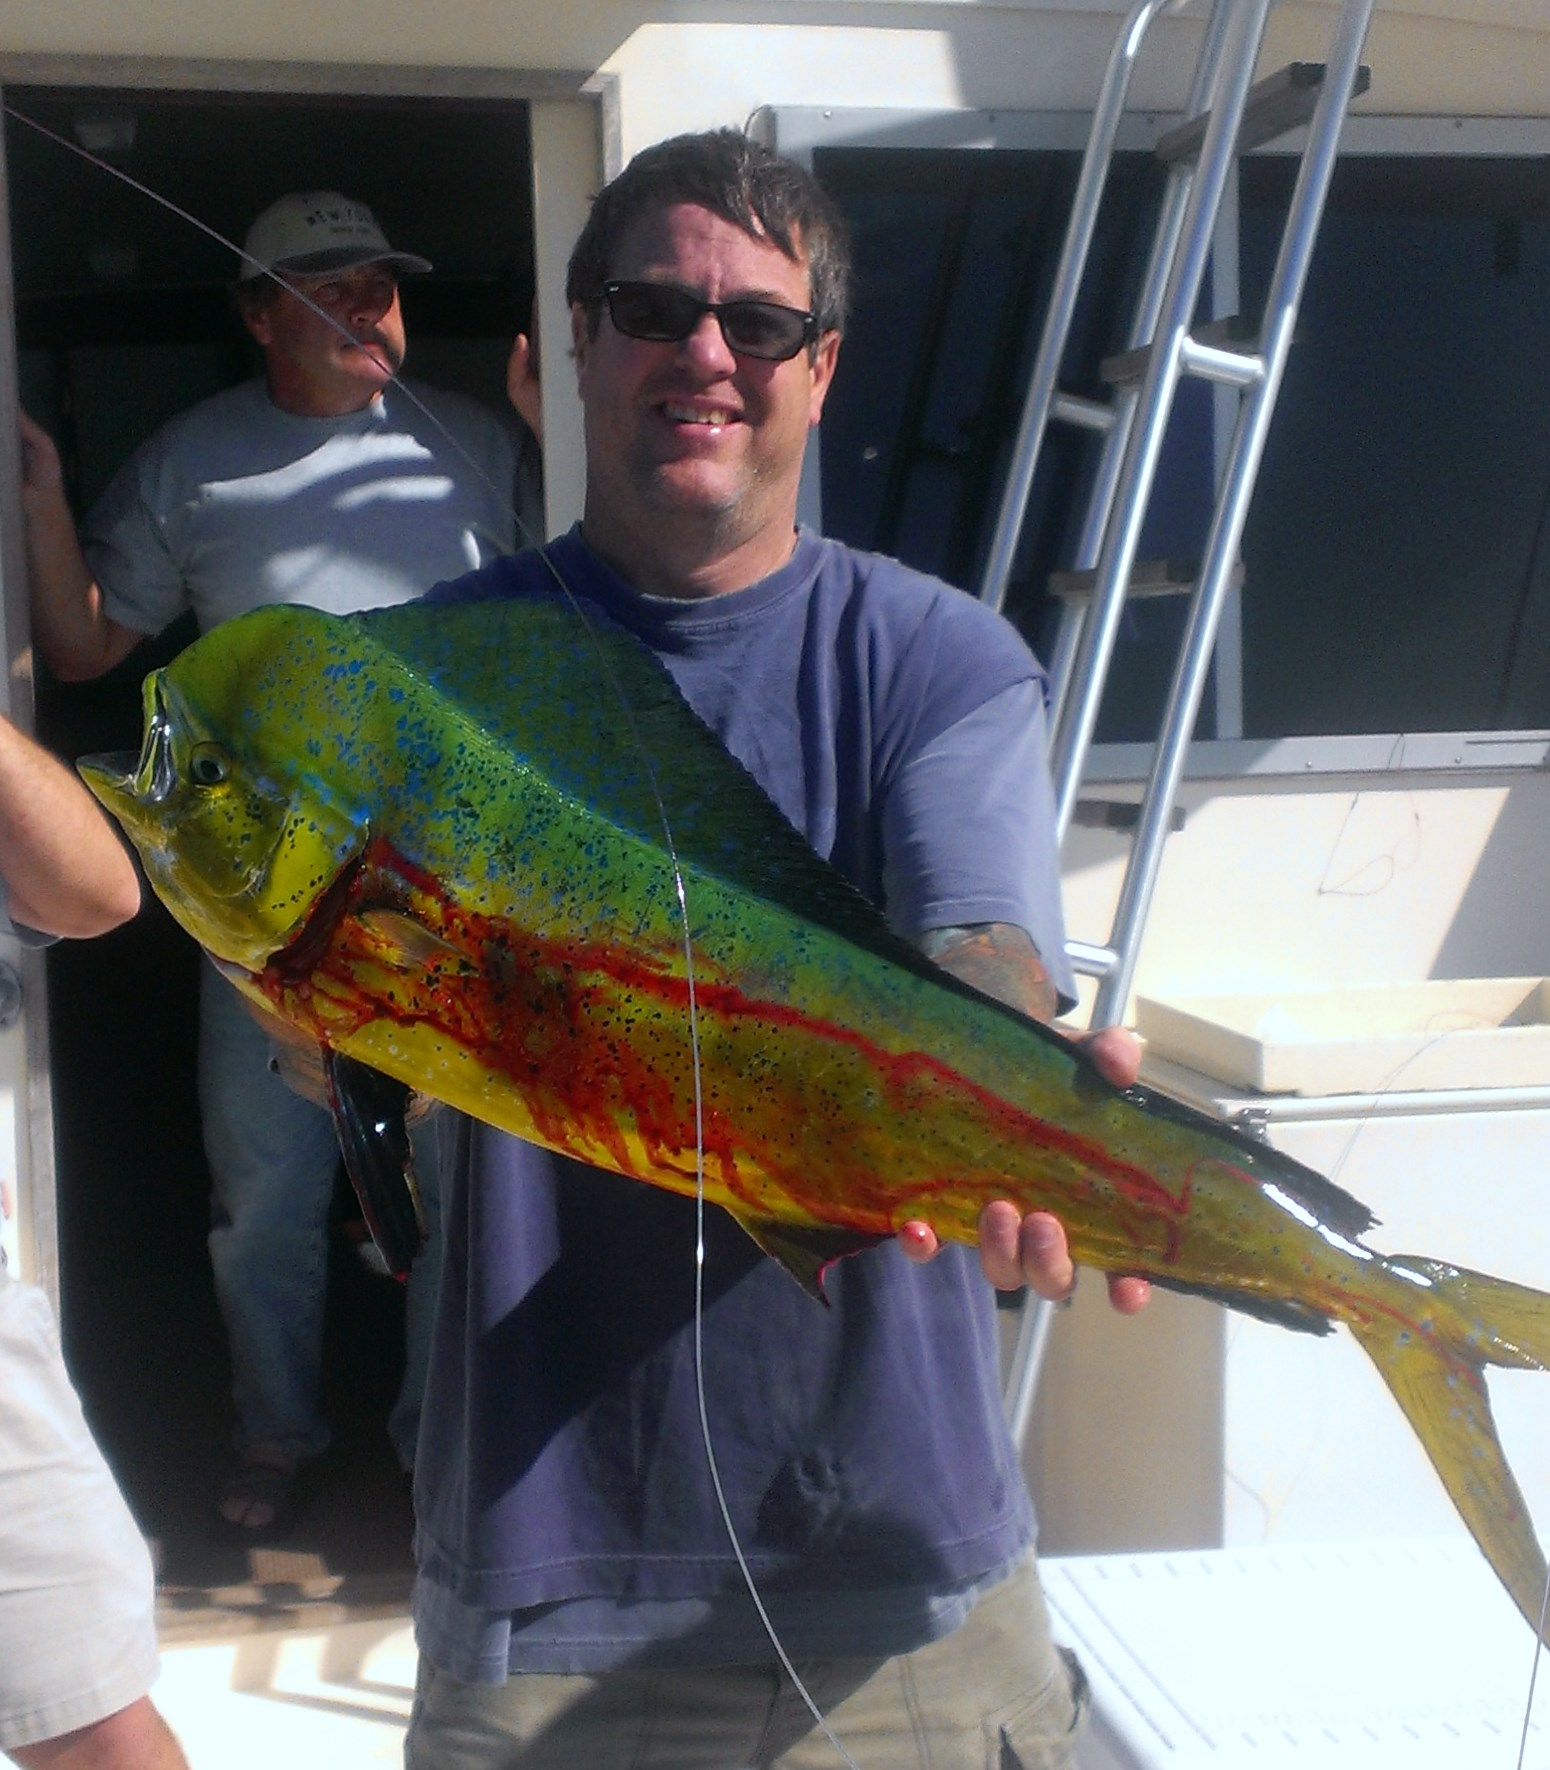 Charter fishing nj charter fishing nj for Tuna fishing charters nj